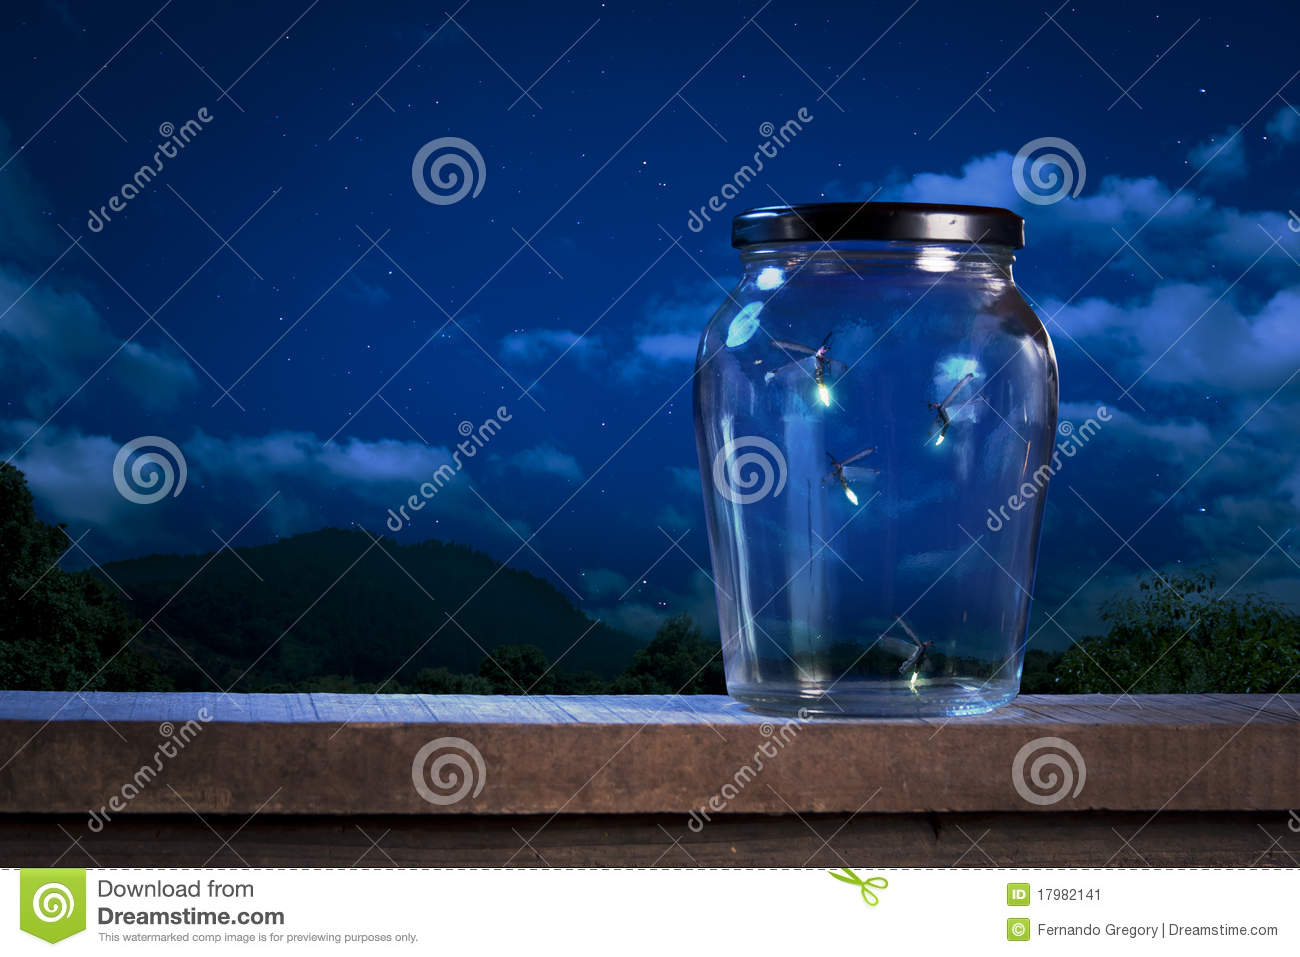 Fireflies In A Jar At Night Stock Image - Image of wallpaper ... for Firefly Insect In Jar  111ane